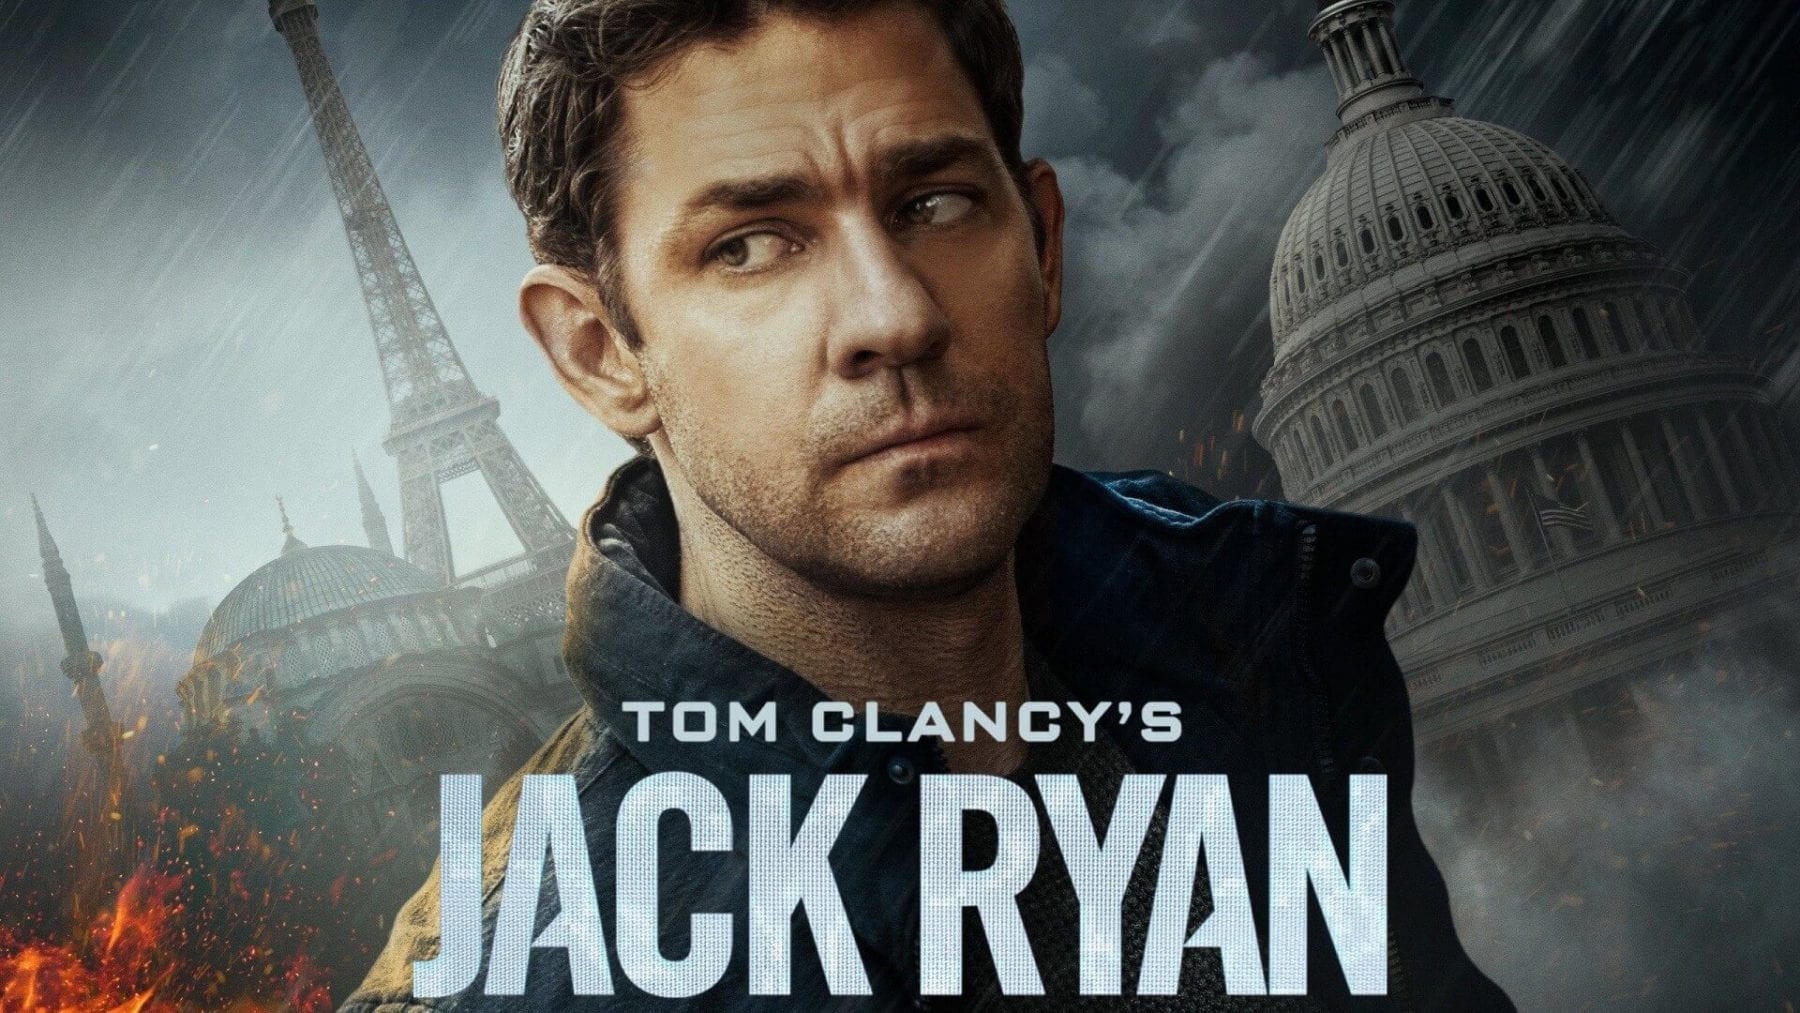 Tom Clancy's Jack Ryan renovado para la tercera temporada por Amazon